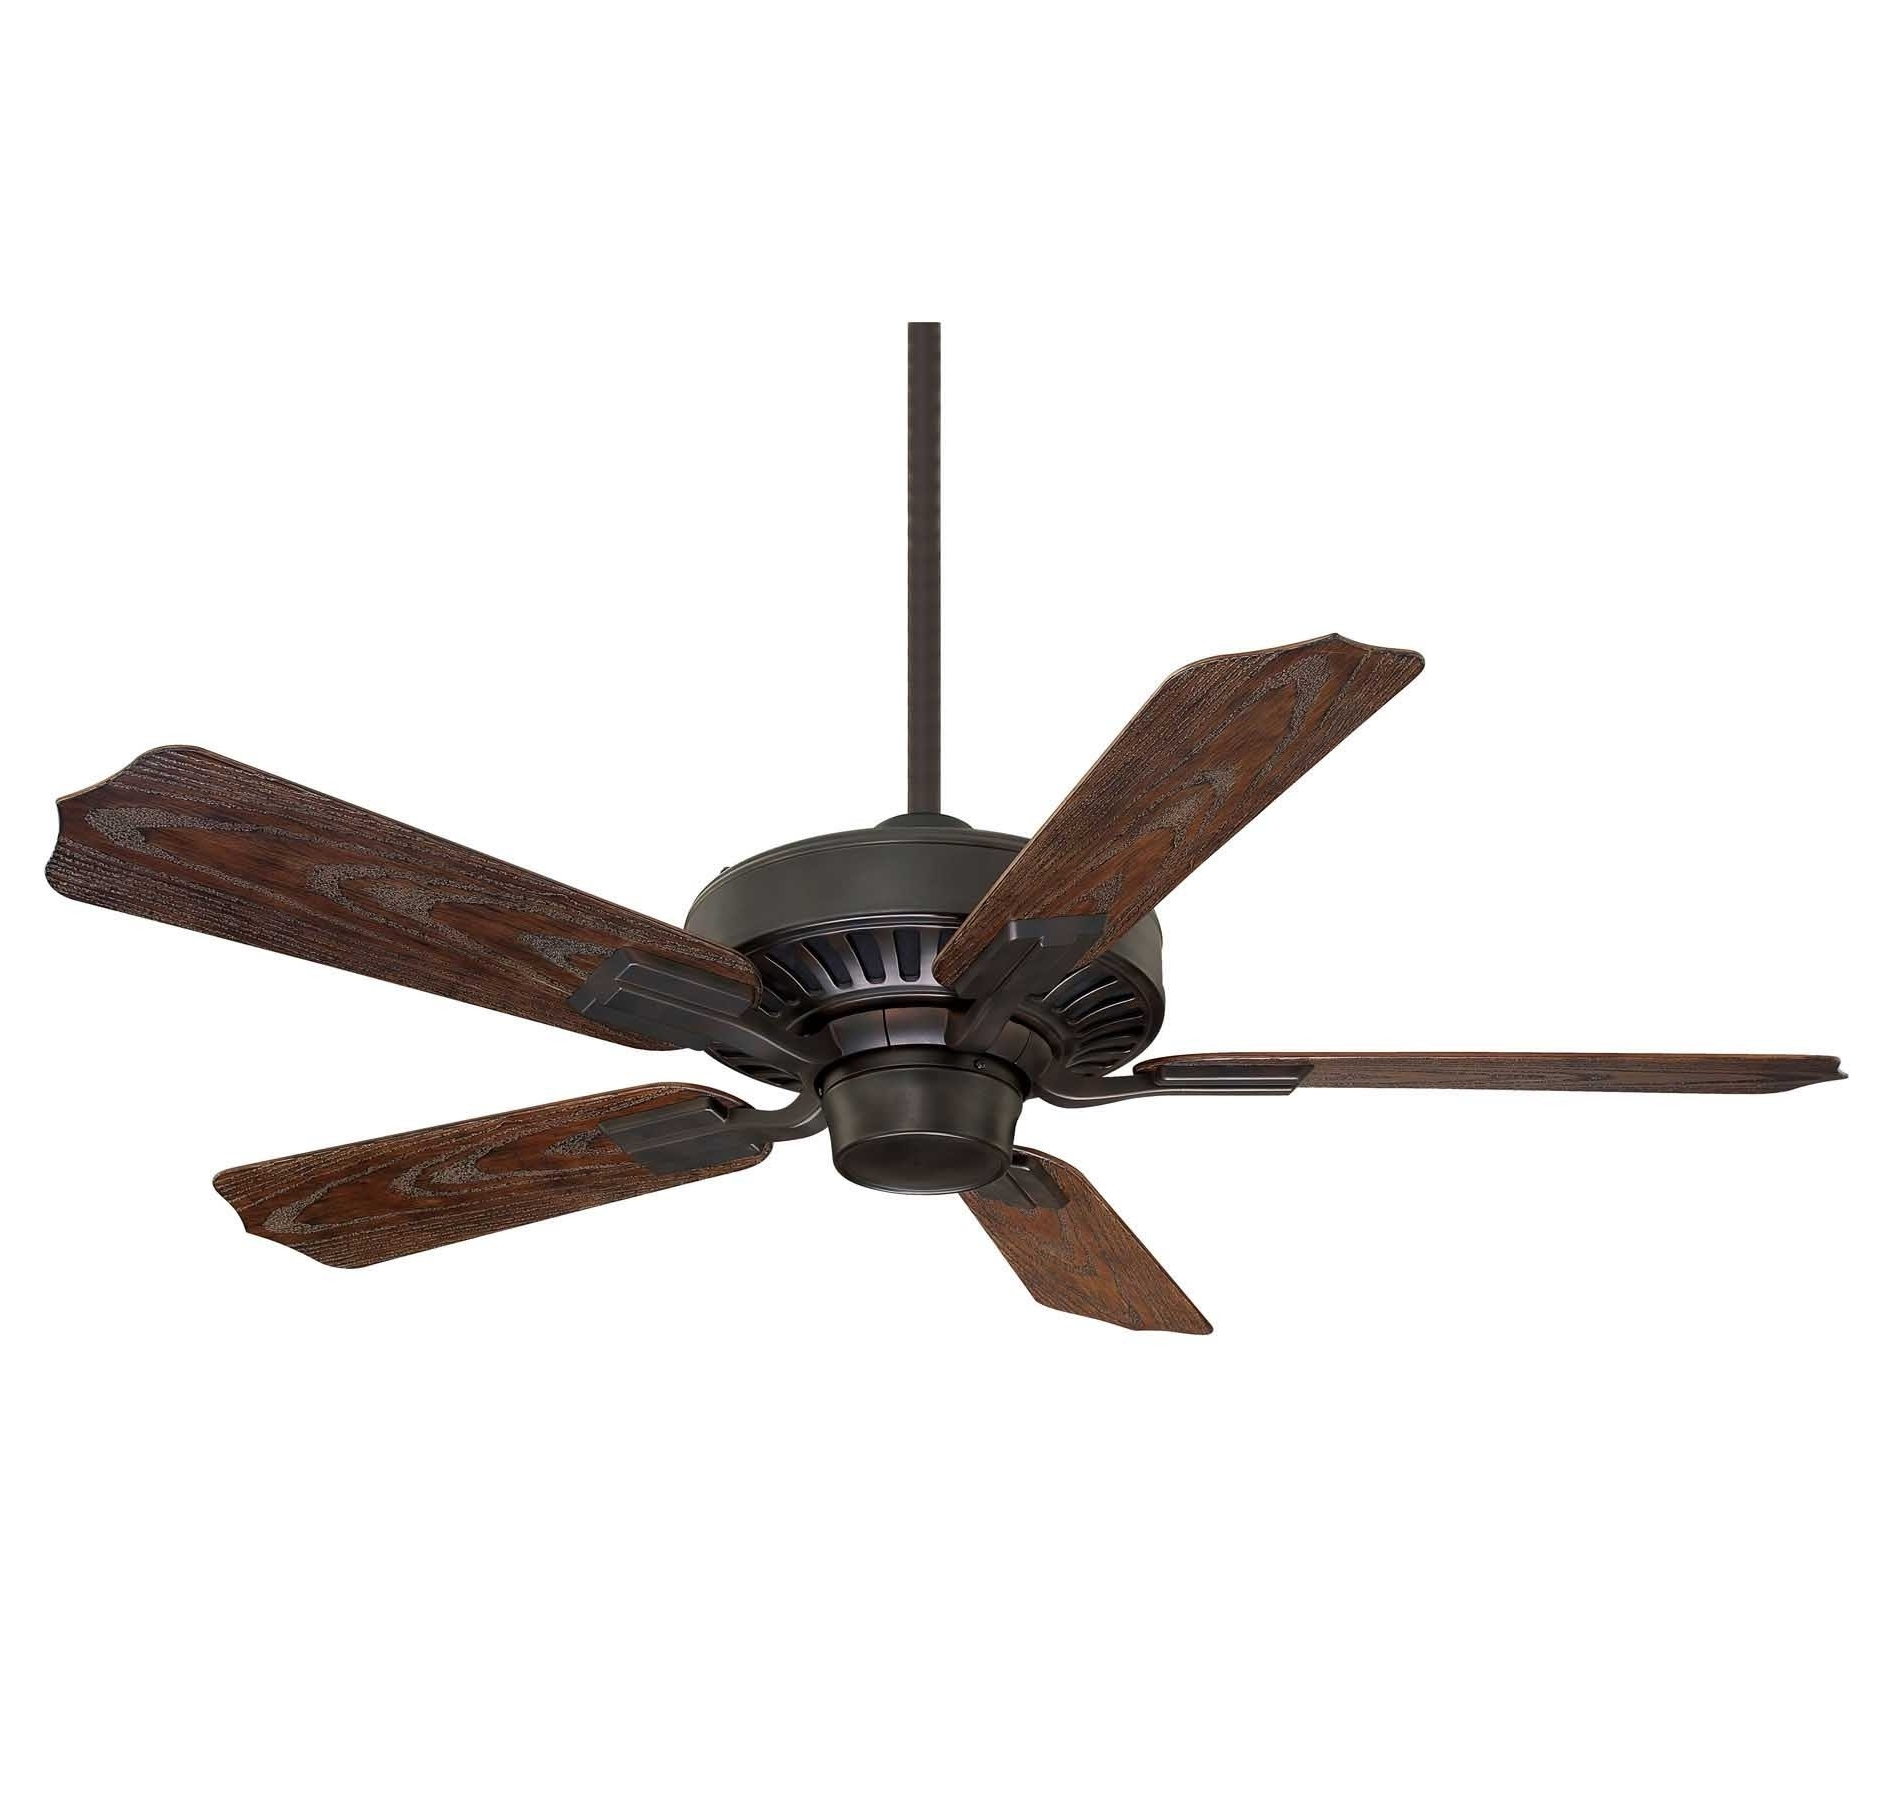 43 925 5Wa 13 Lancer Ii 43 Inch Outdoor Ceiling Fansavoy House Regarding Current Outdoor Ceiling Fans With Covers (View 1 of 20)